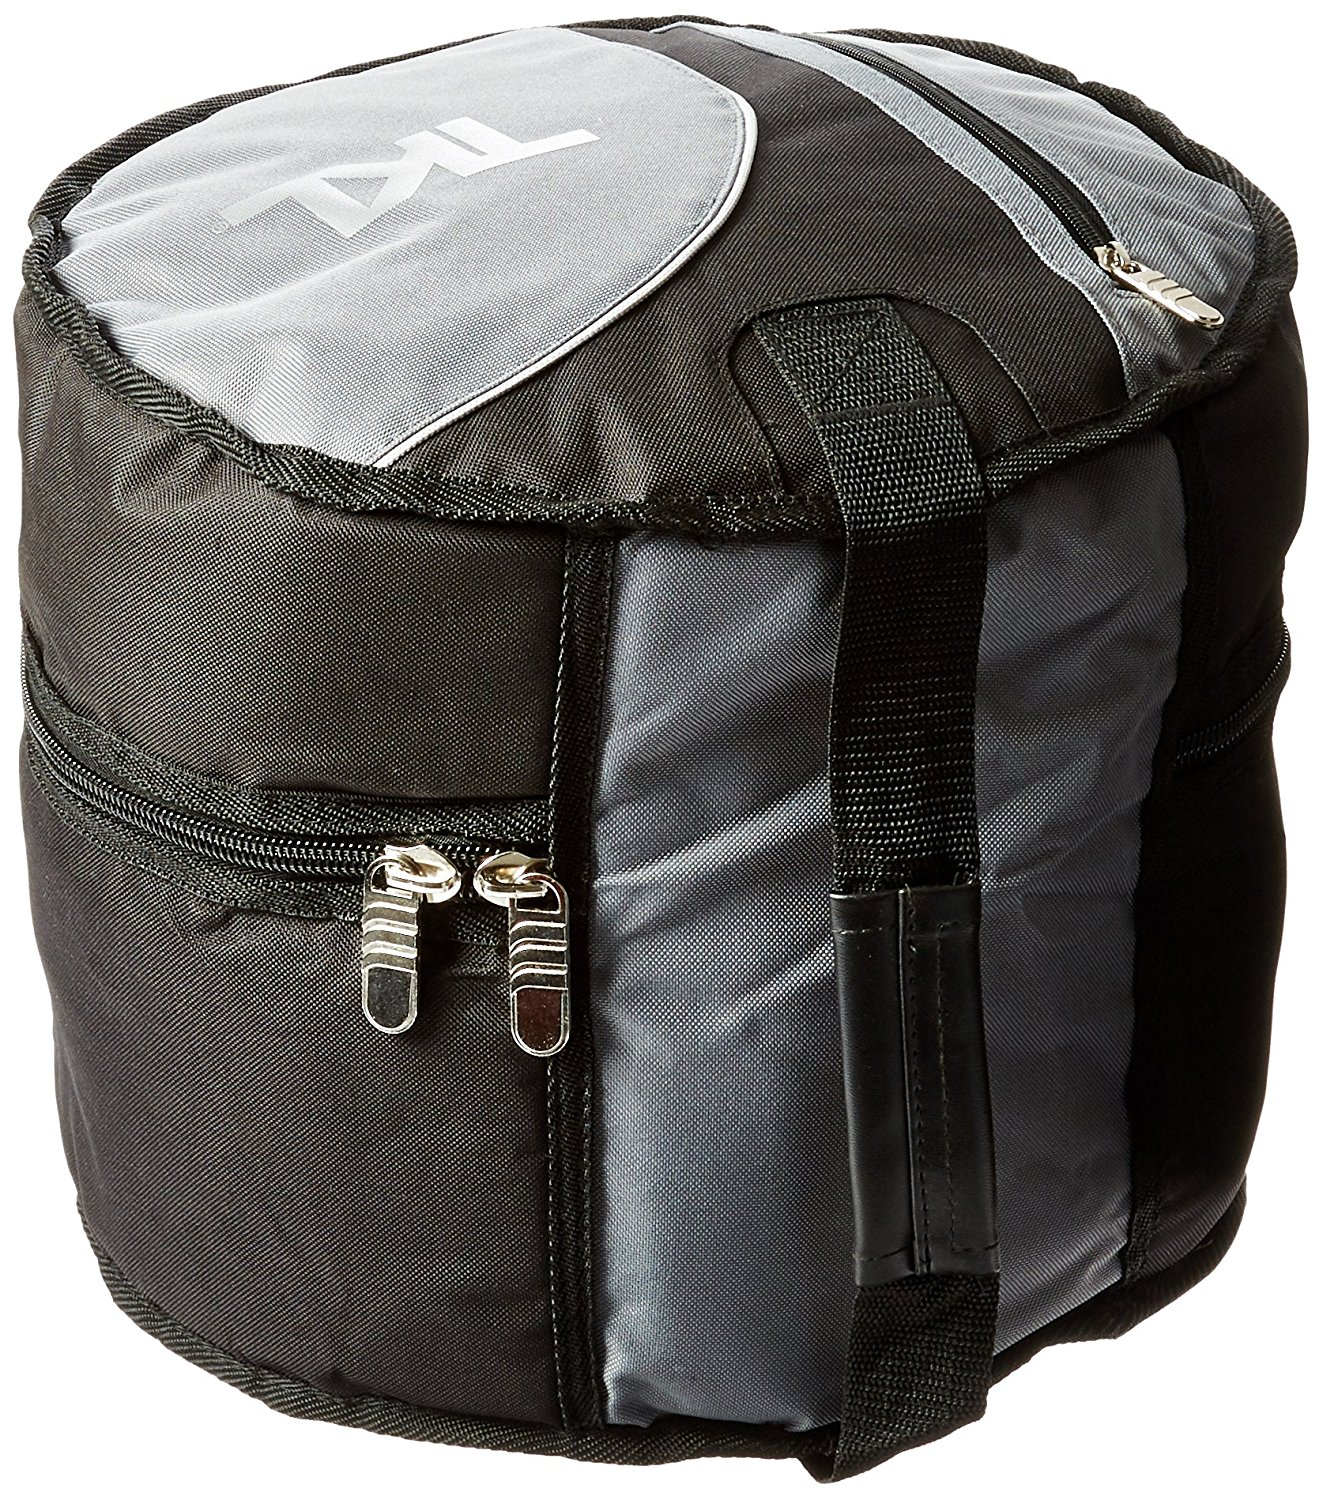 (ea)BLACK BELT 8 X 8 DRUM BAG